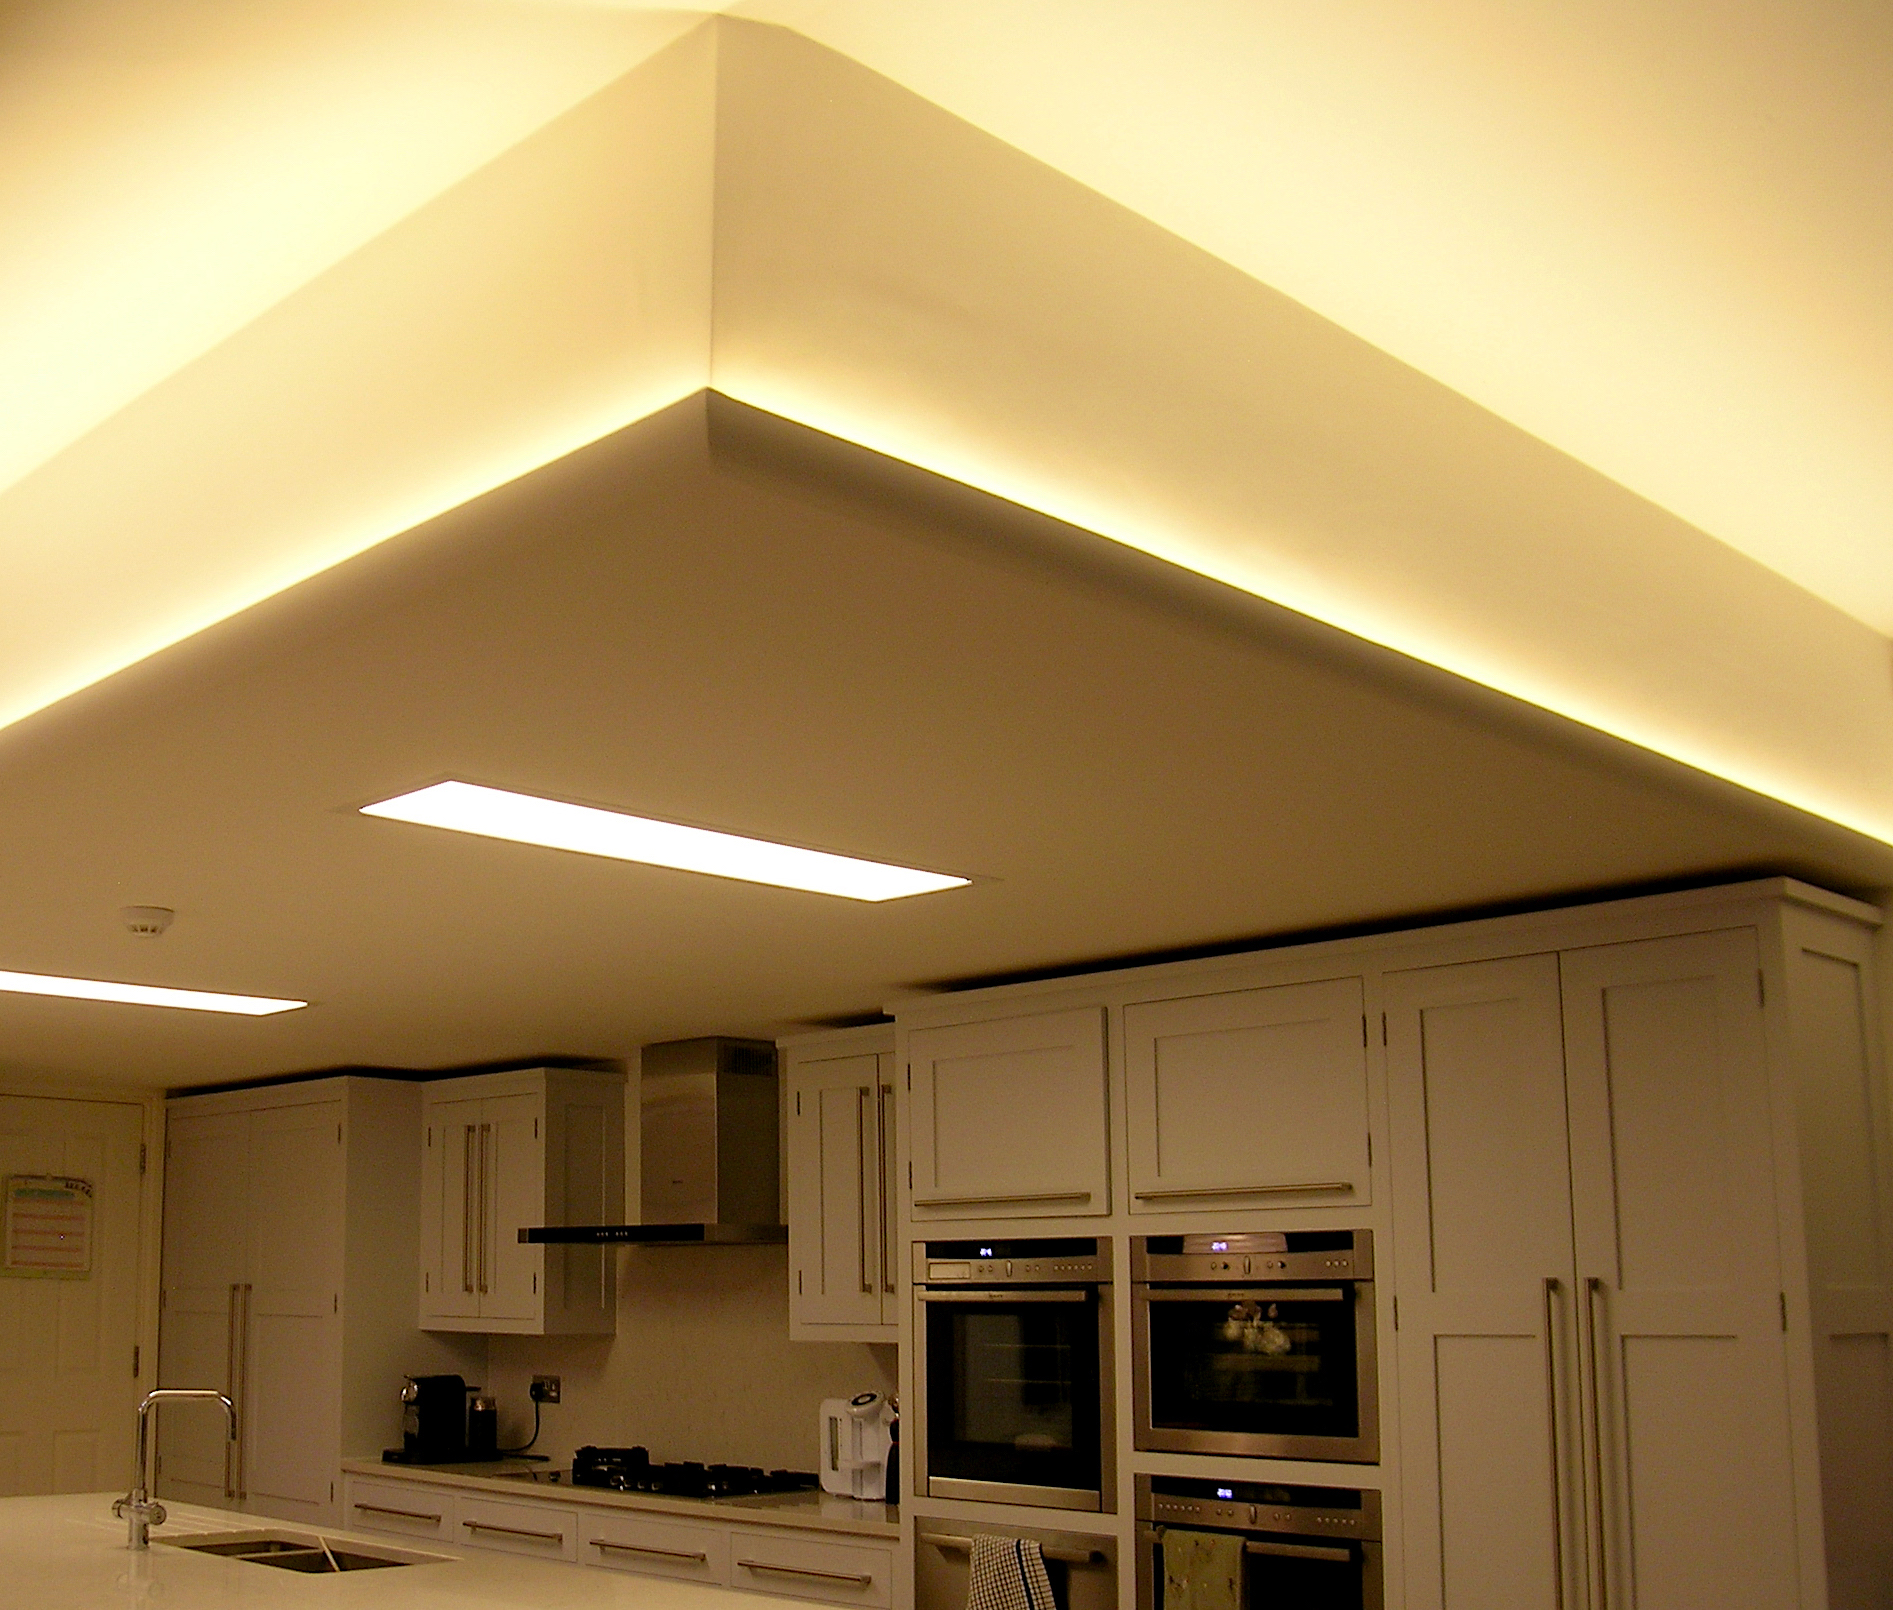 eleanor-bell-residential-lighting-london-kitchen.jpg